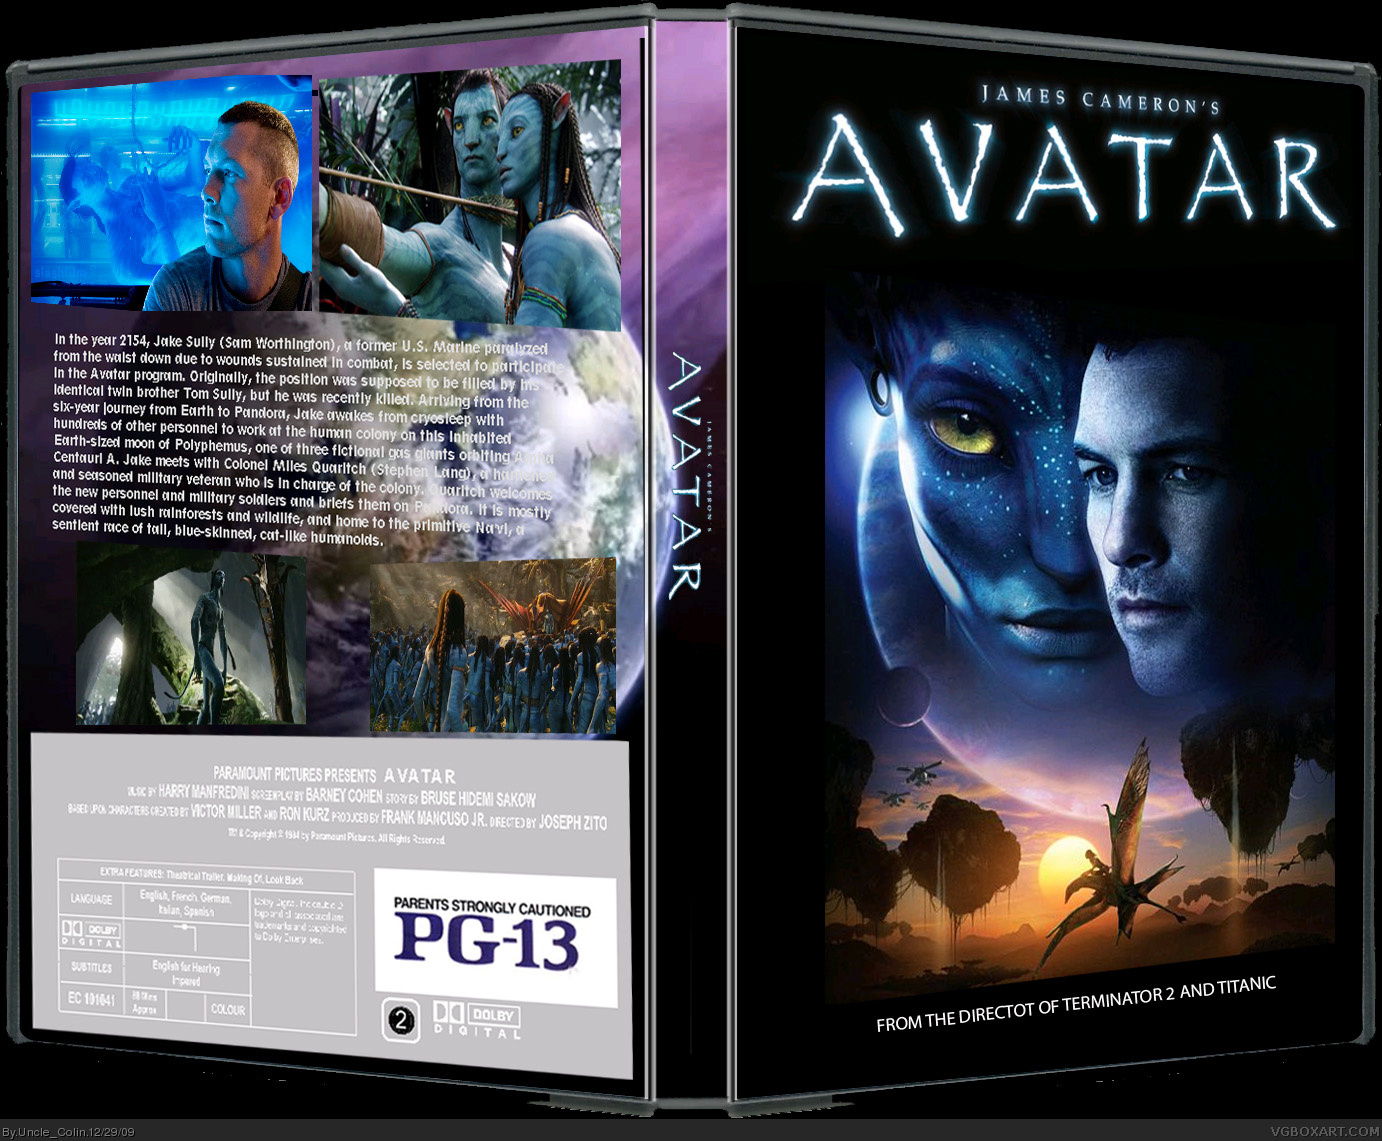 James Cameron's Avatar box cover